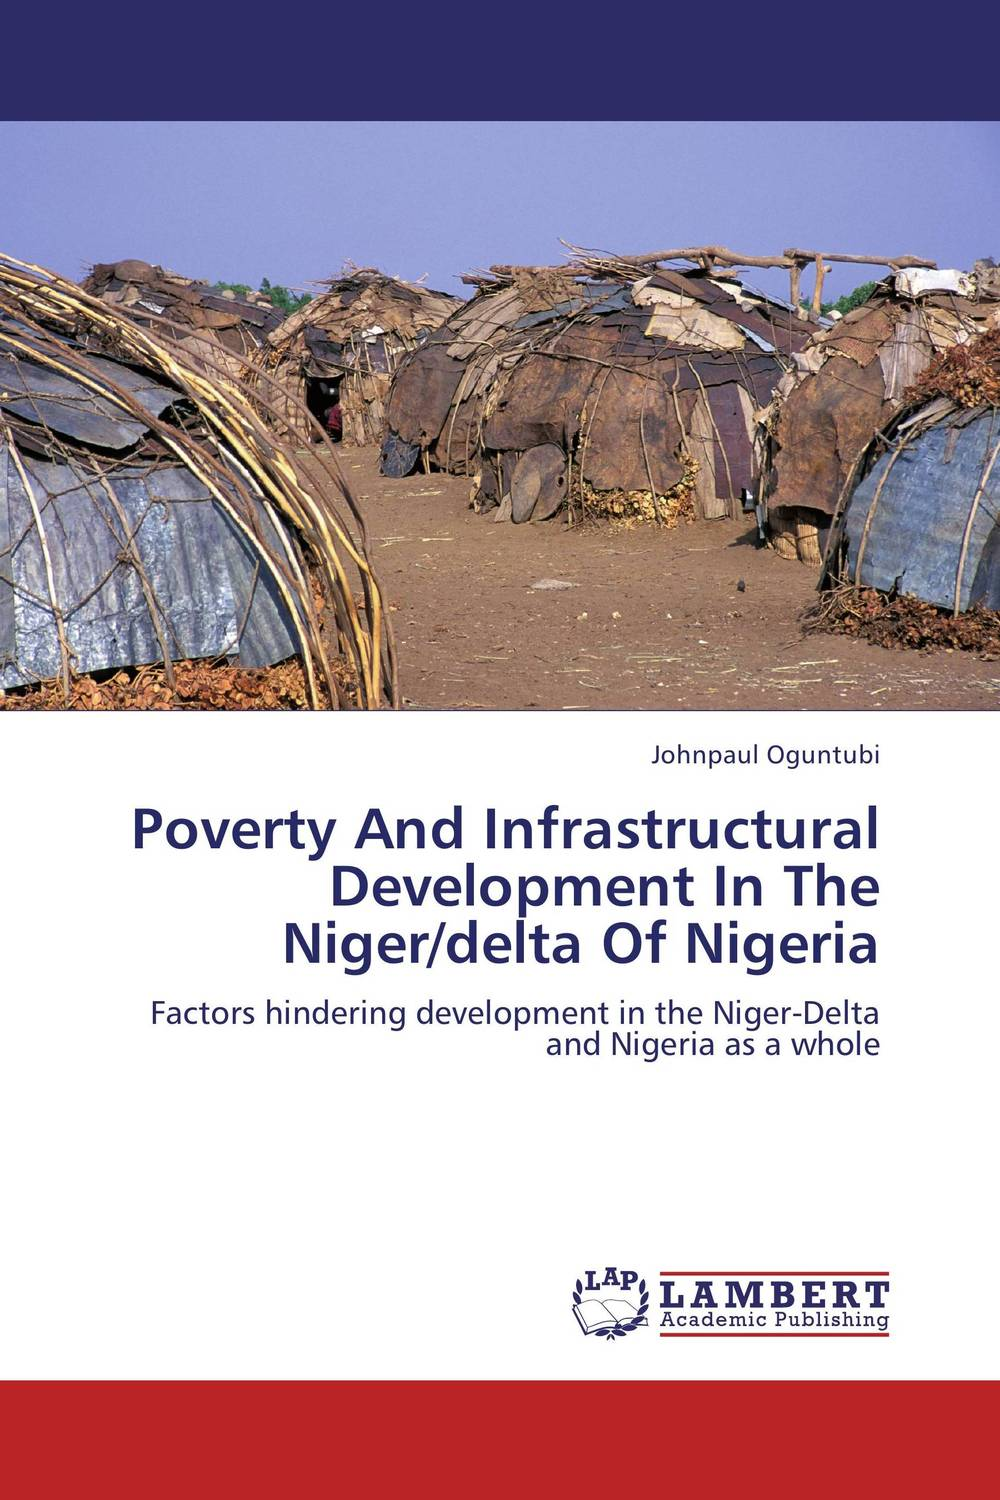 Poverty And Infrastructural Development In The Niger/delta Of Nigeria fighting corruption in nigeria